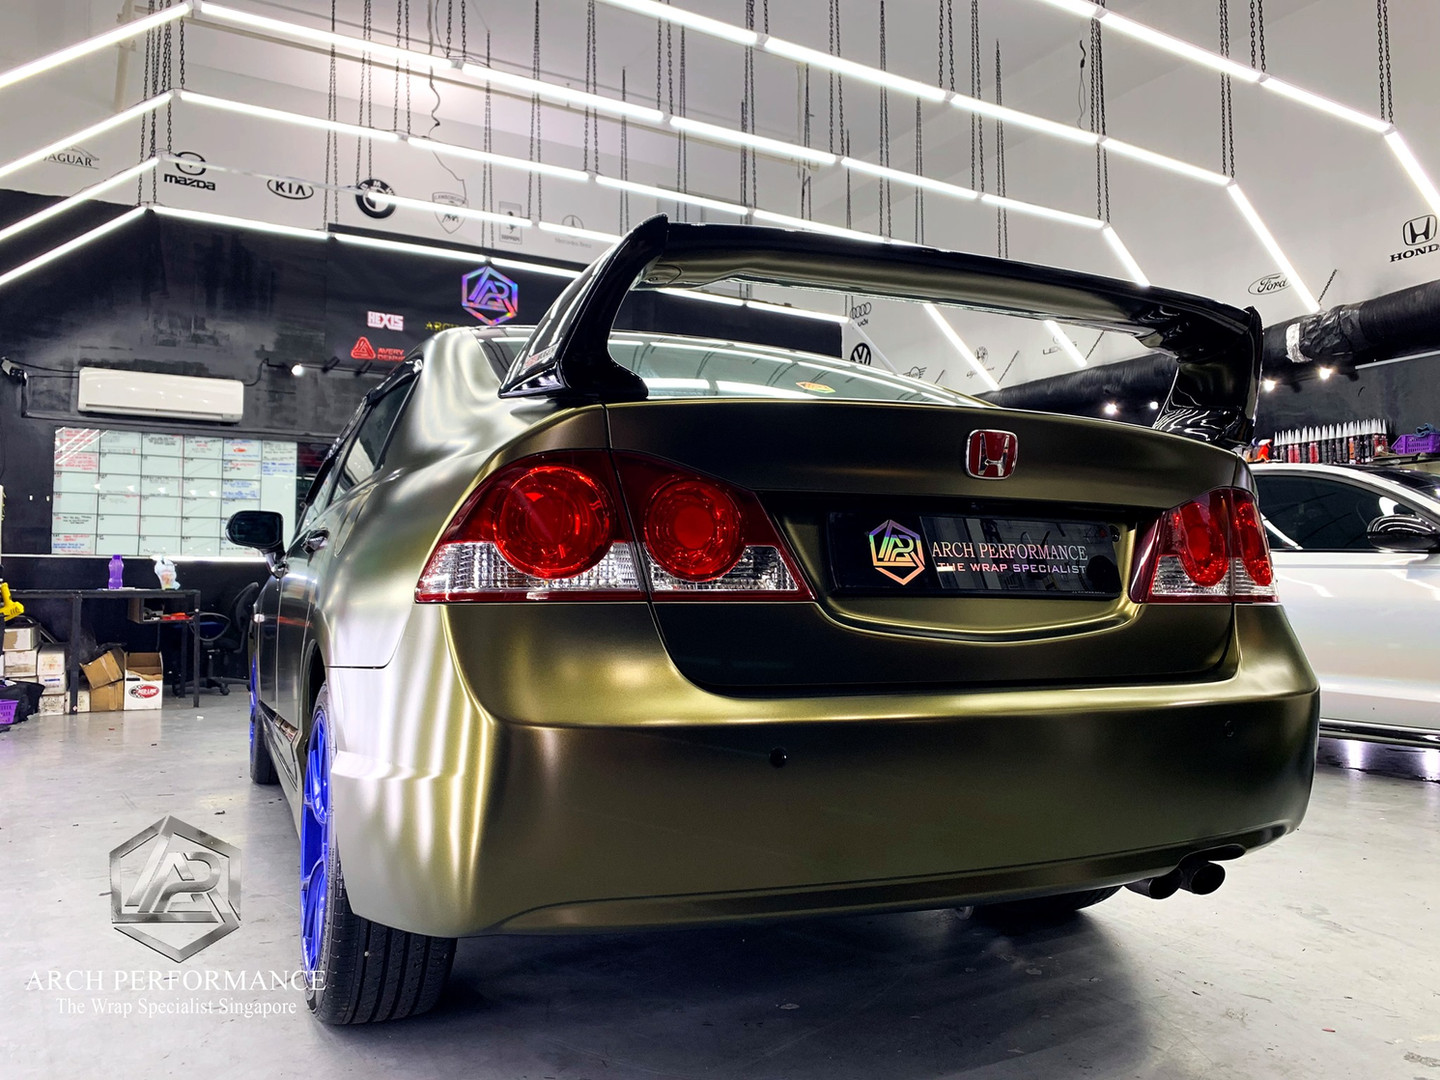 Civic FD Matte Metallic (Bond Gold) Rear